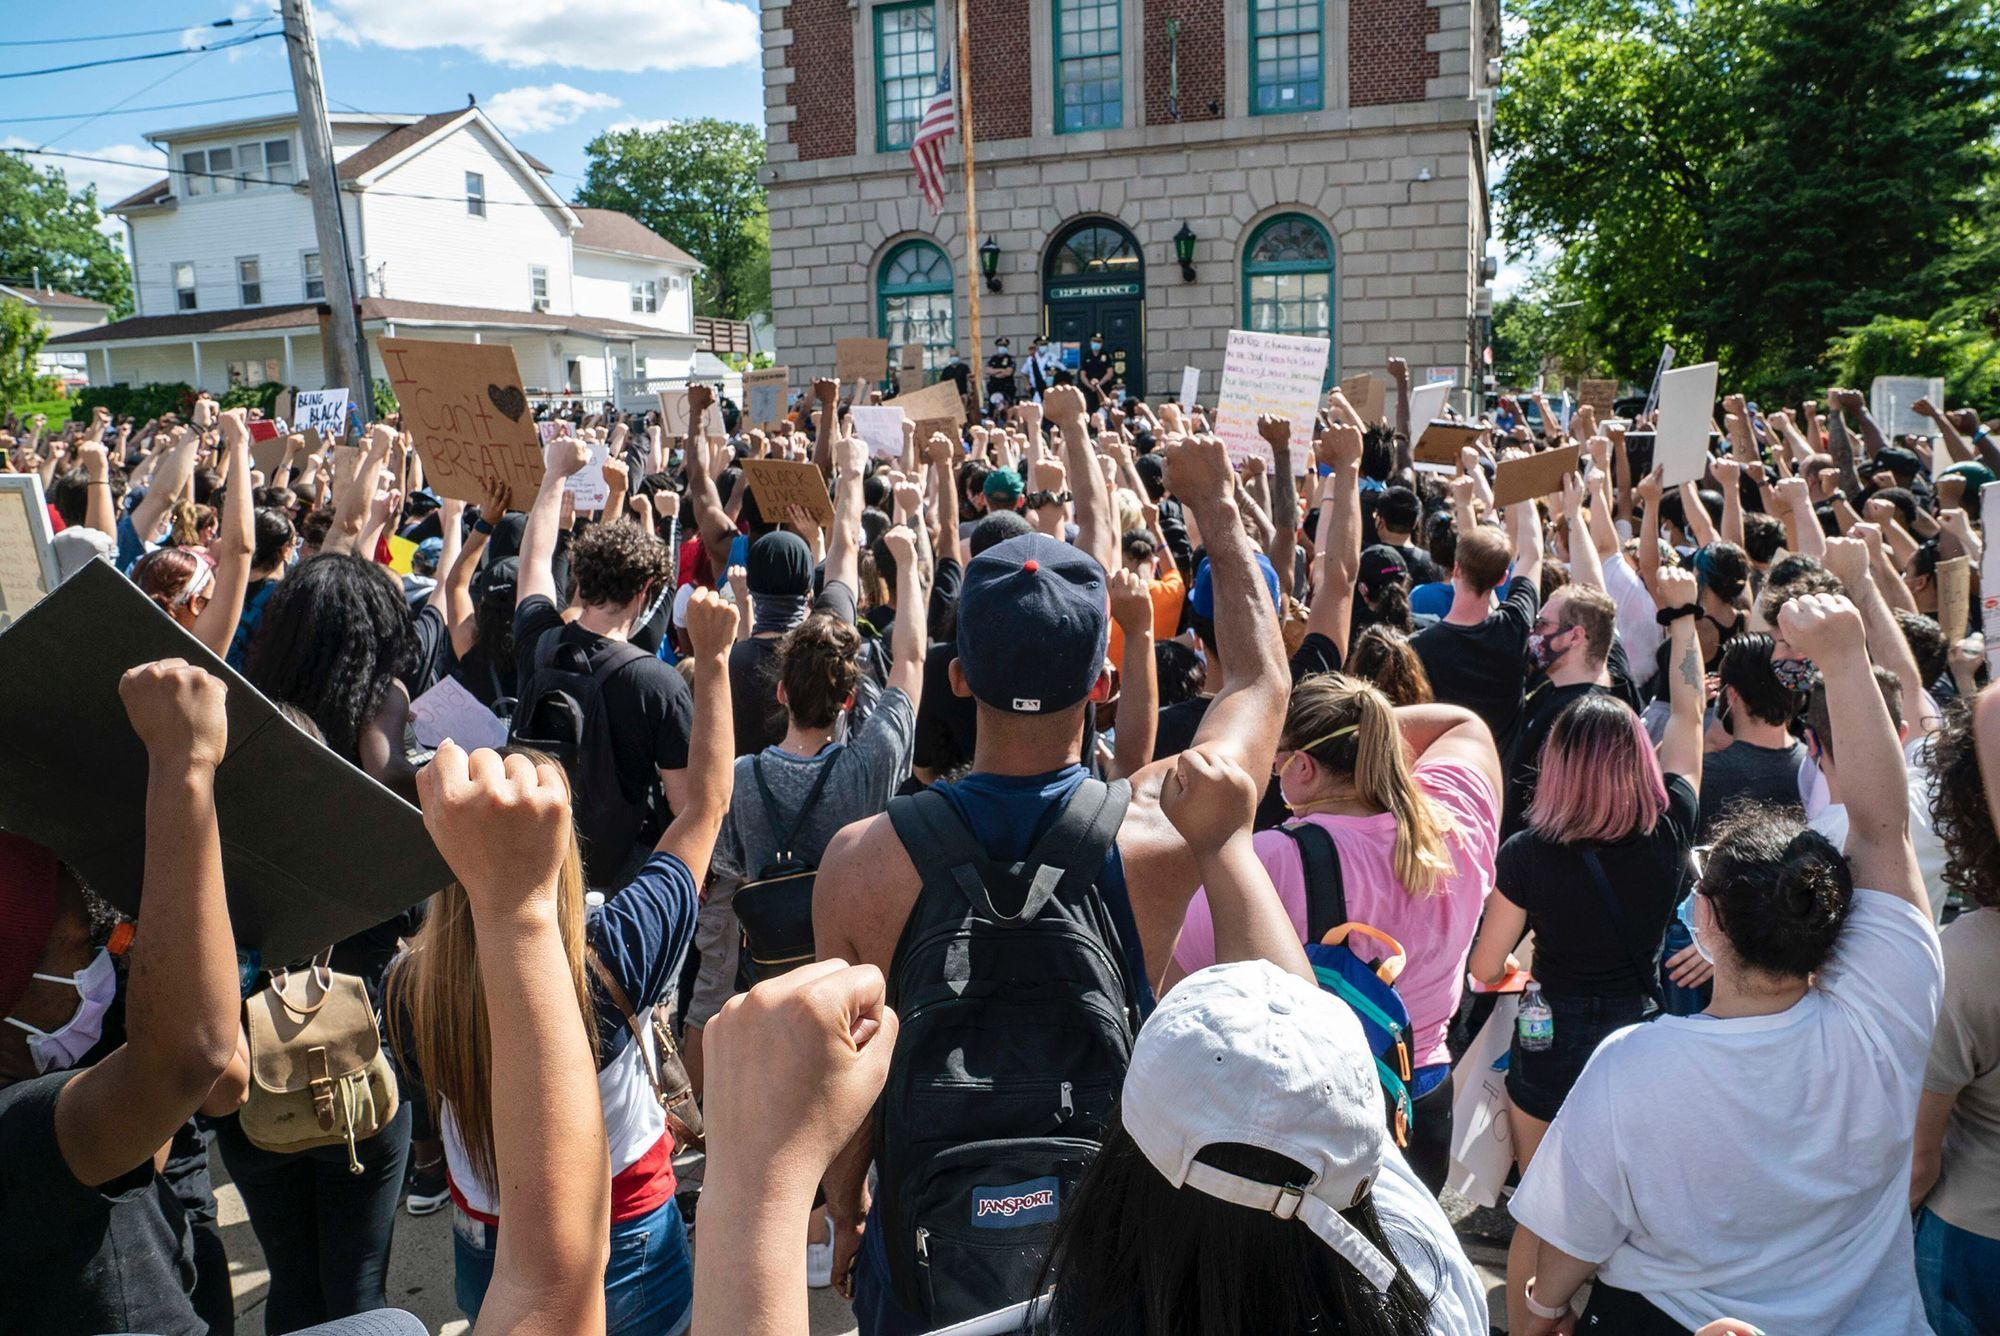 A very large crowd of people raise their fists in solidarity in front of a police station during a demonstration . Many of the demonstrators hold uo signs.